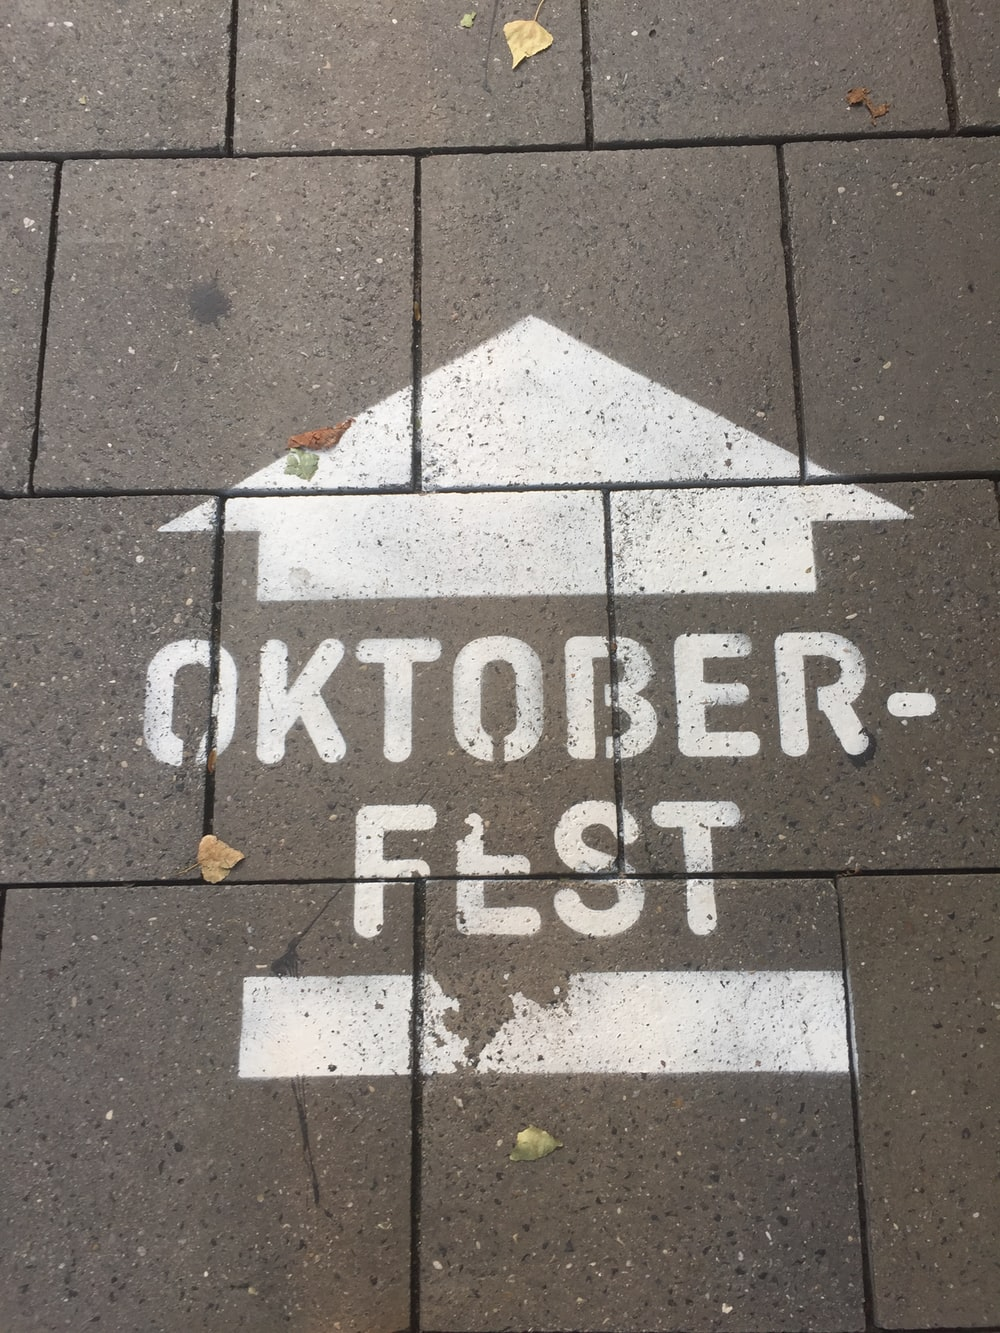 October fest signage on gray concrete wall